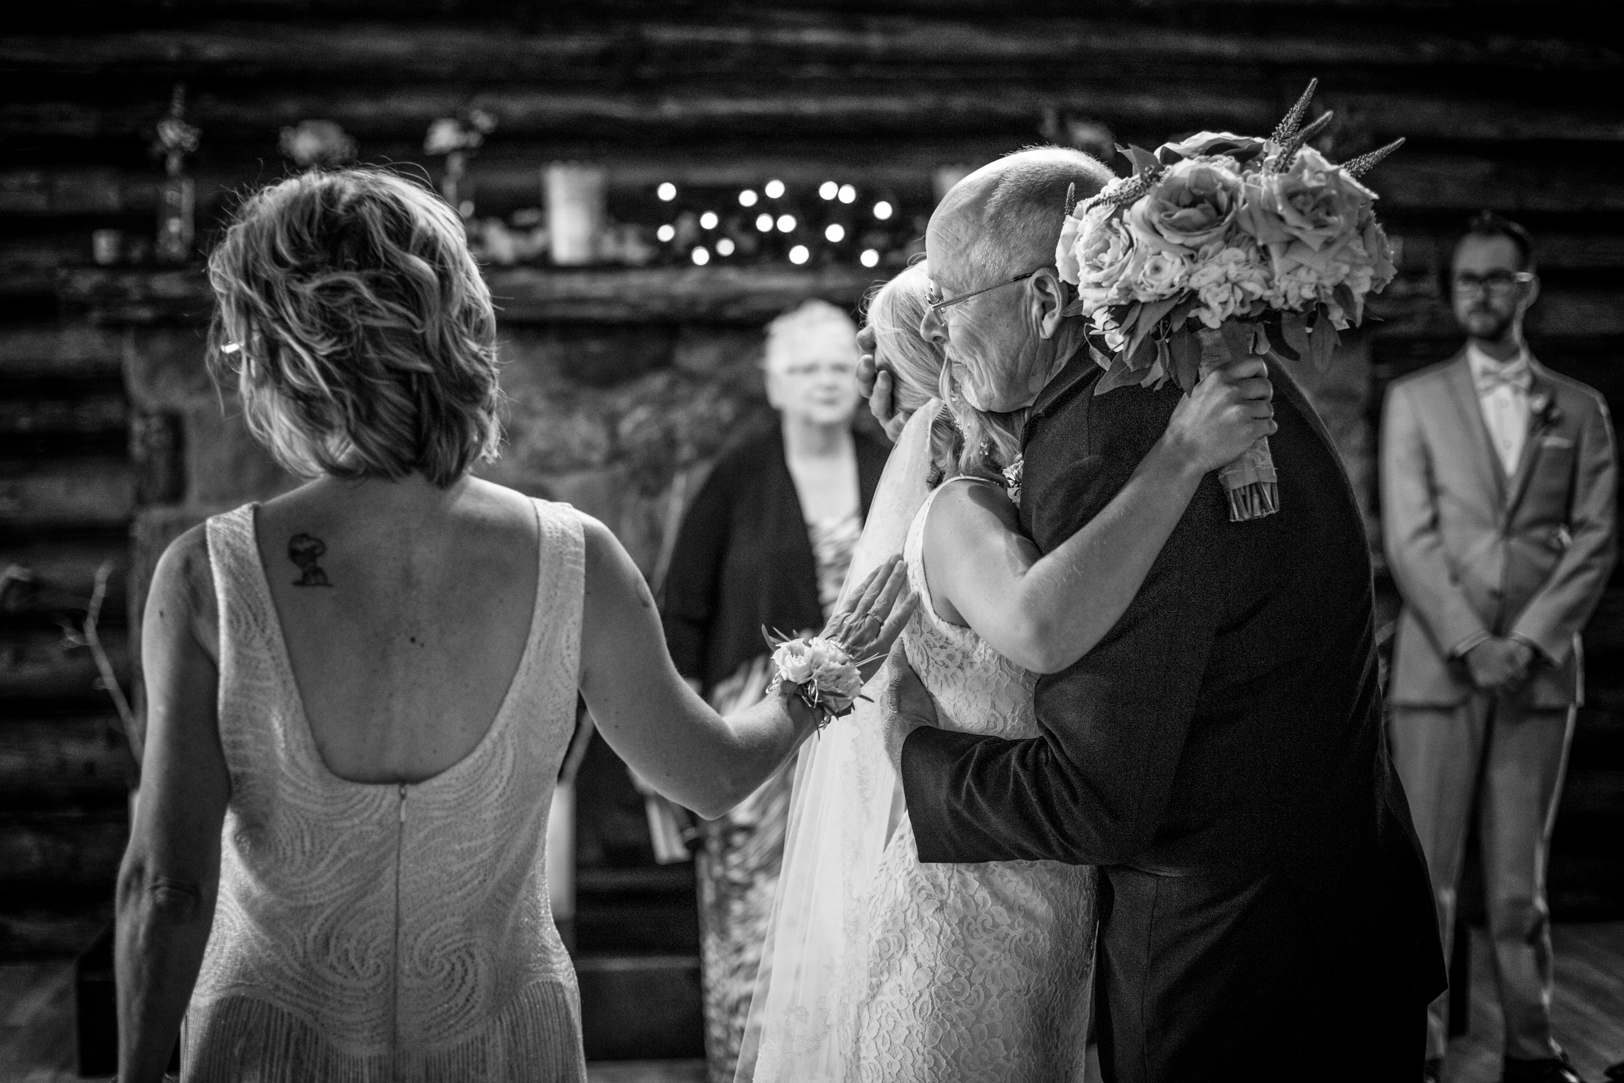 Wedding Processional Photos